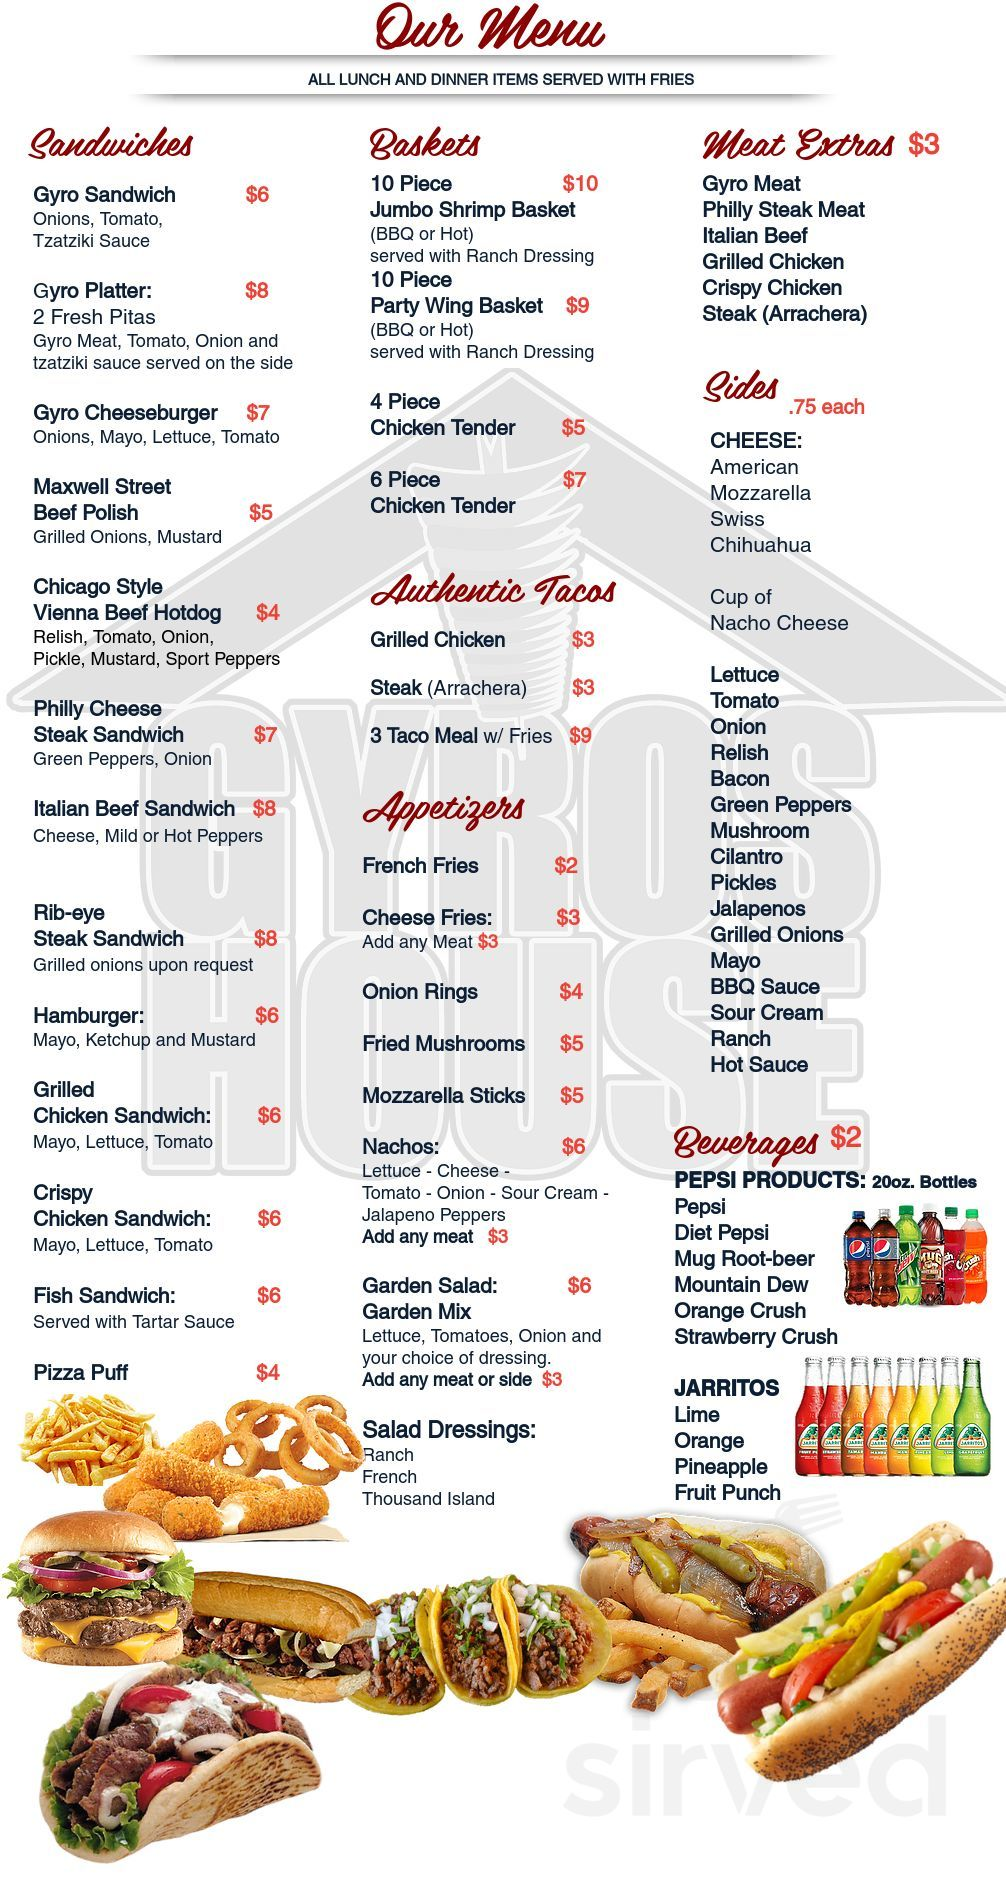 Euro Gyro Menu / Come try our mediterranean and american cuisine here at gyro gyro in dunwoody, georgia!